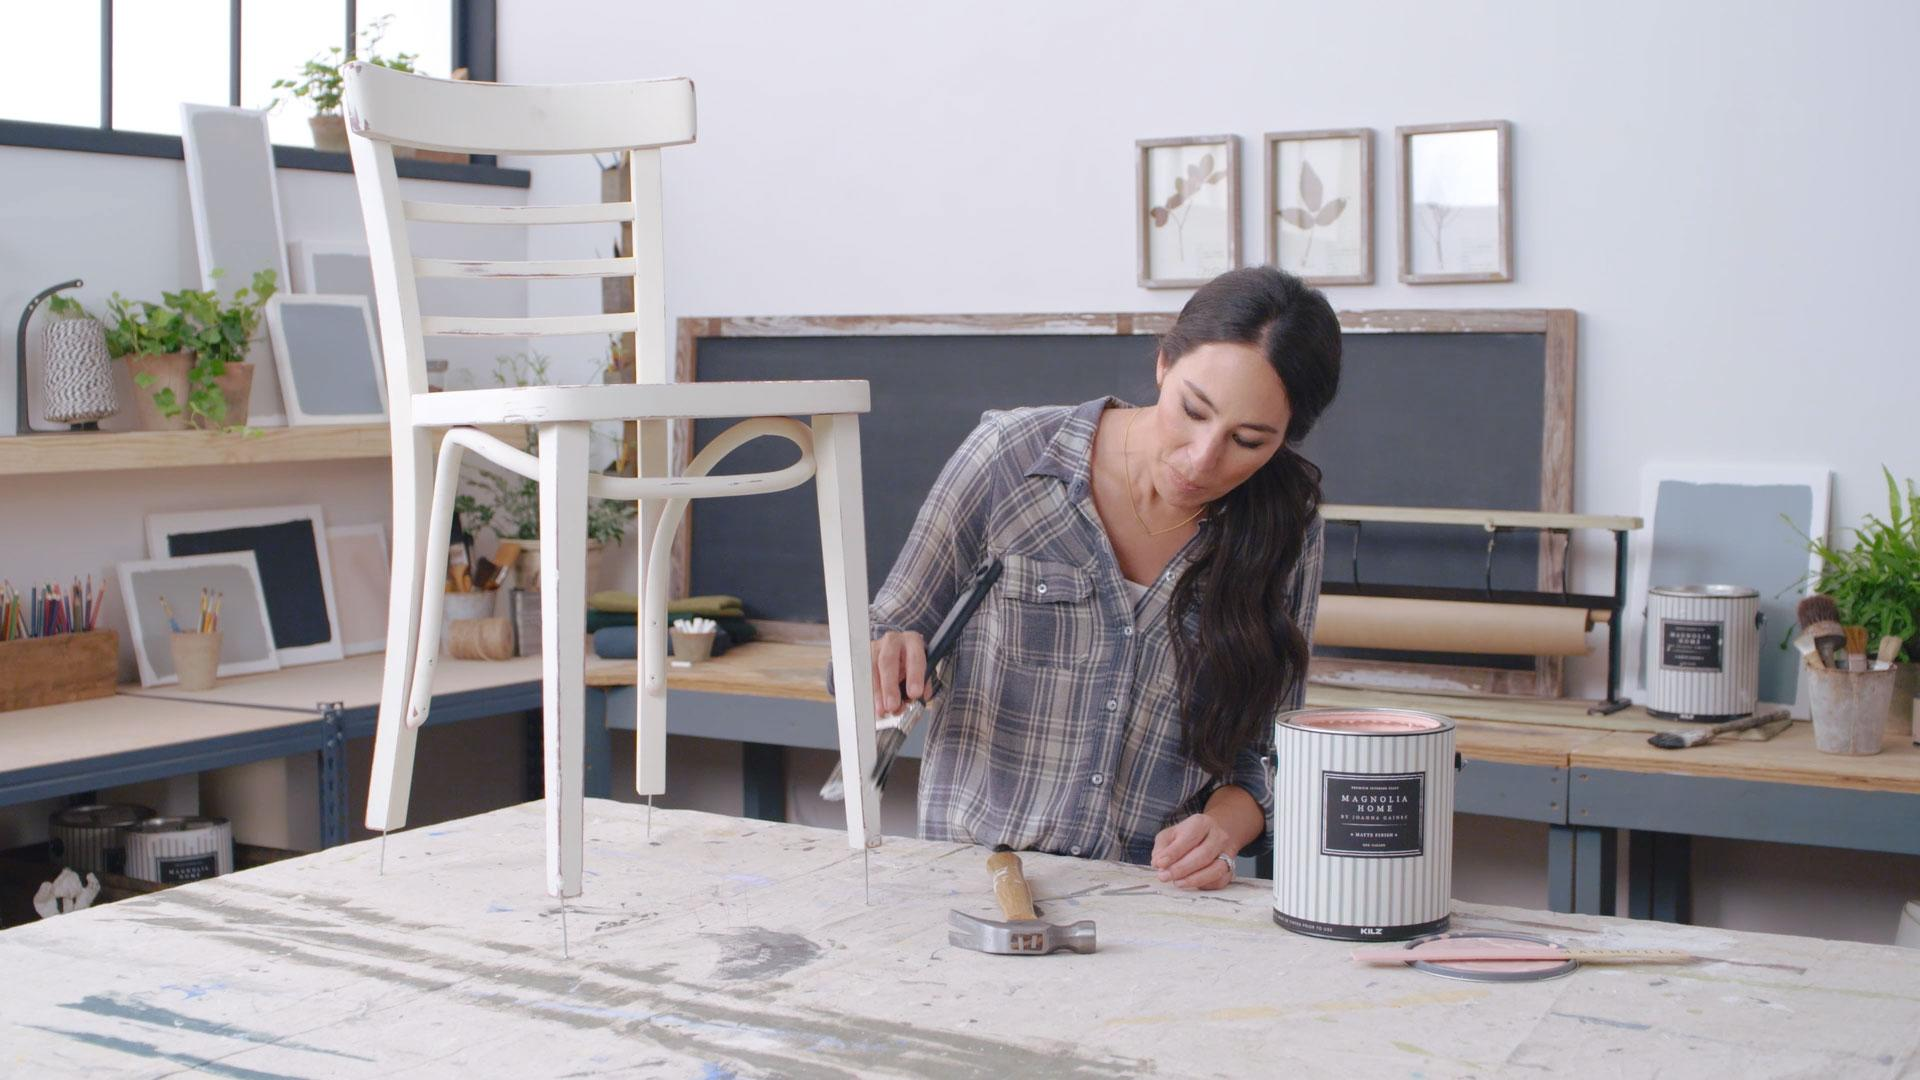 Joanna Gaines Paint Line Is Now Available at a Store Near You